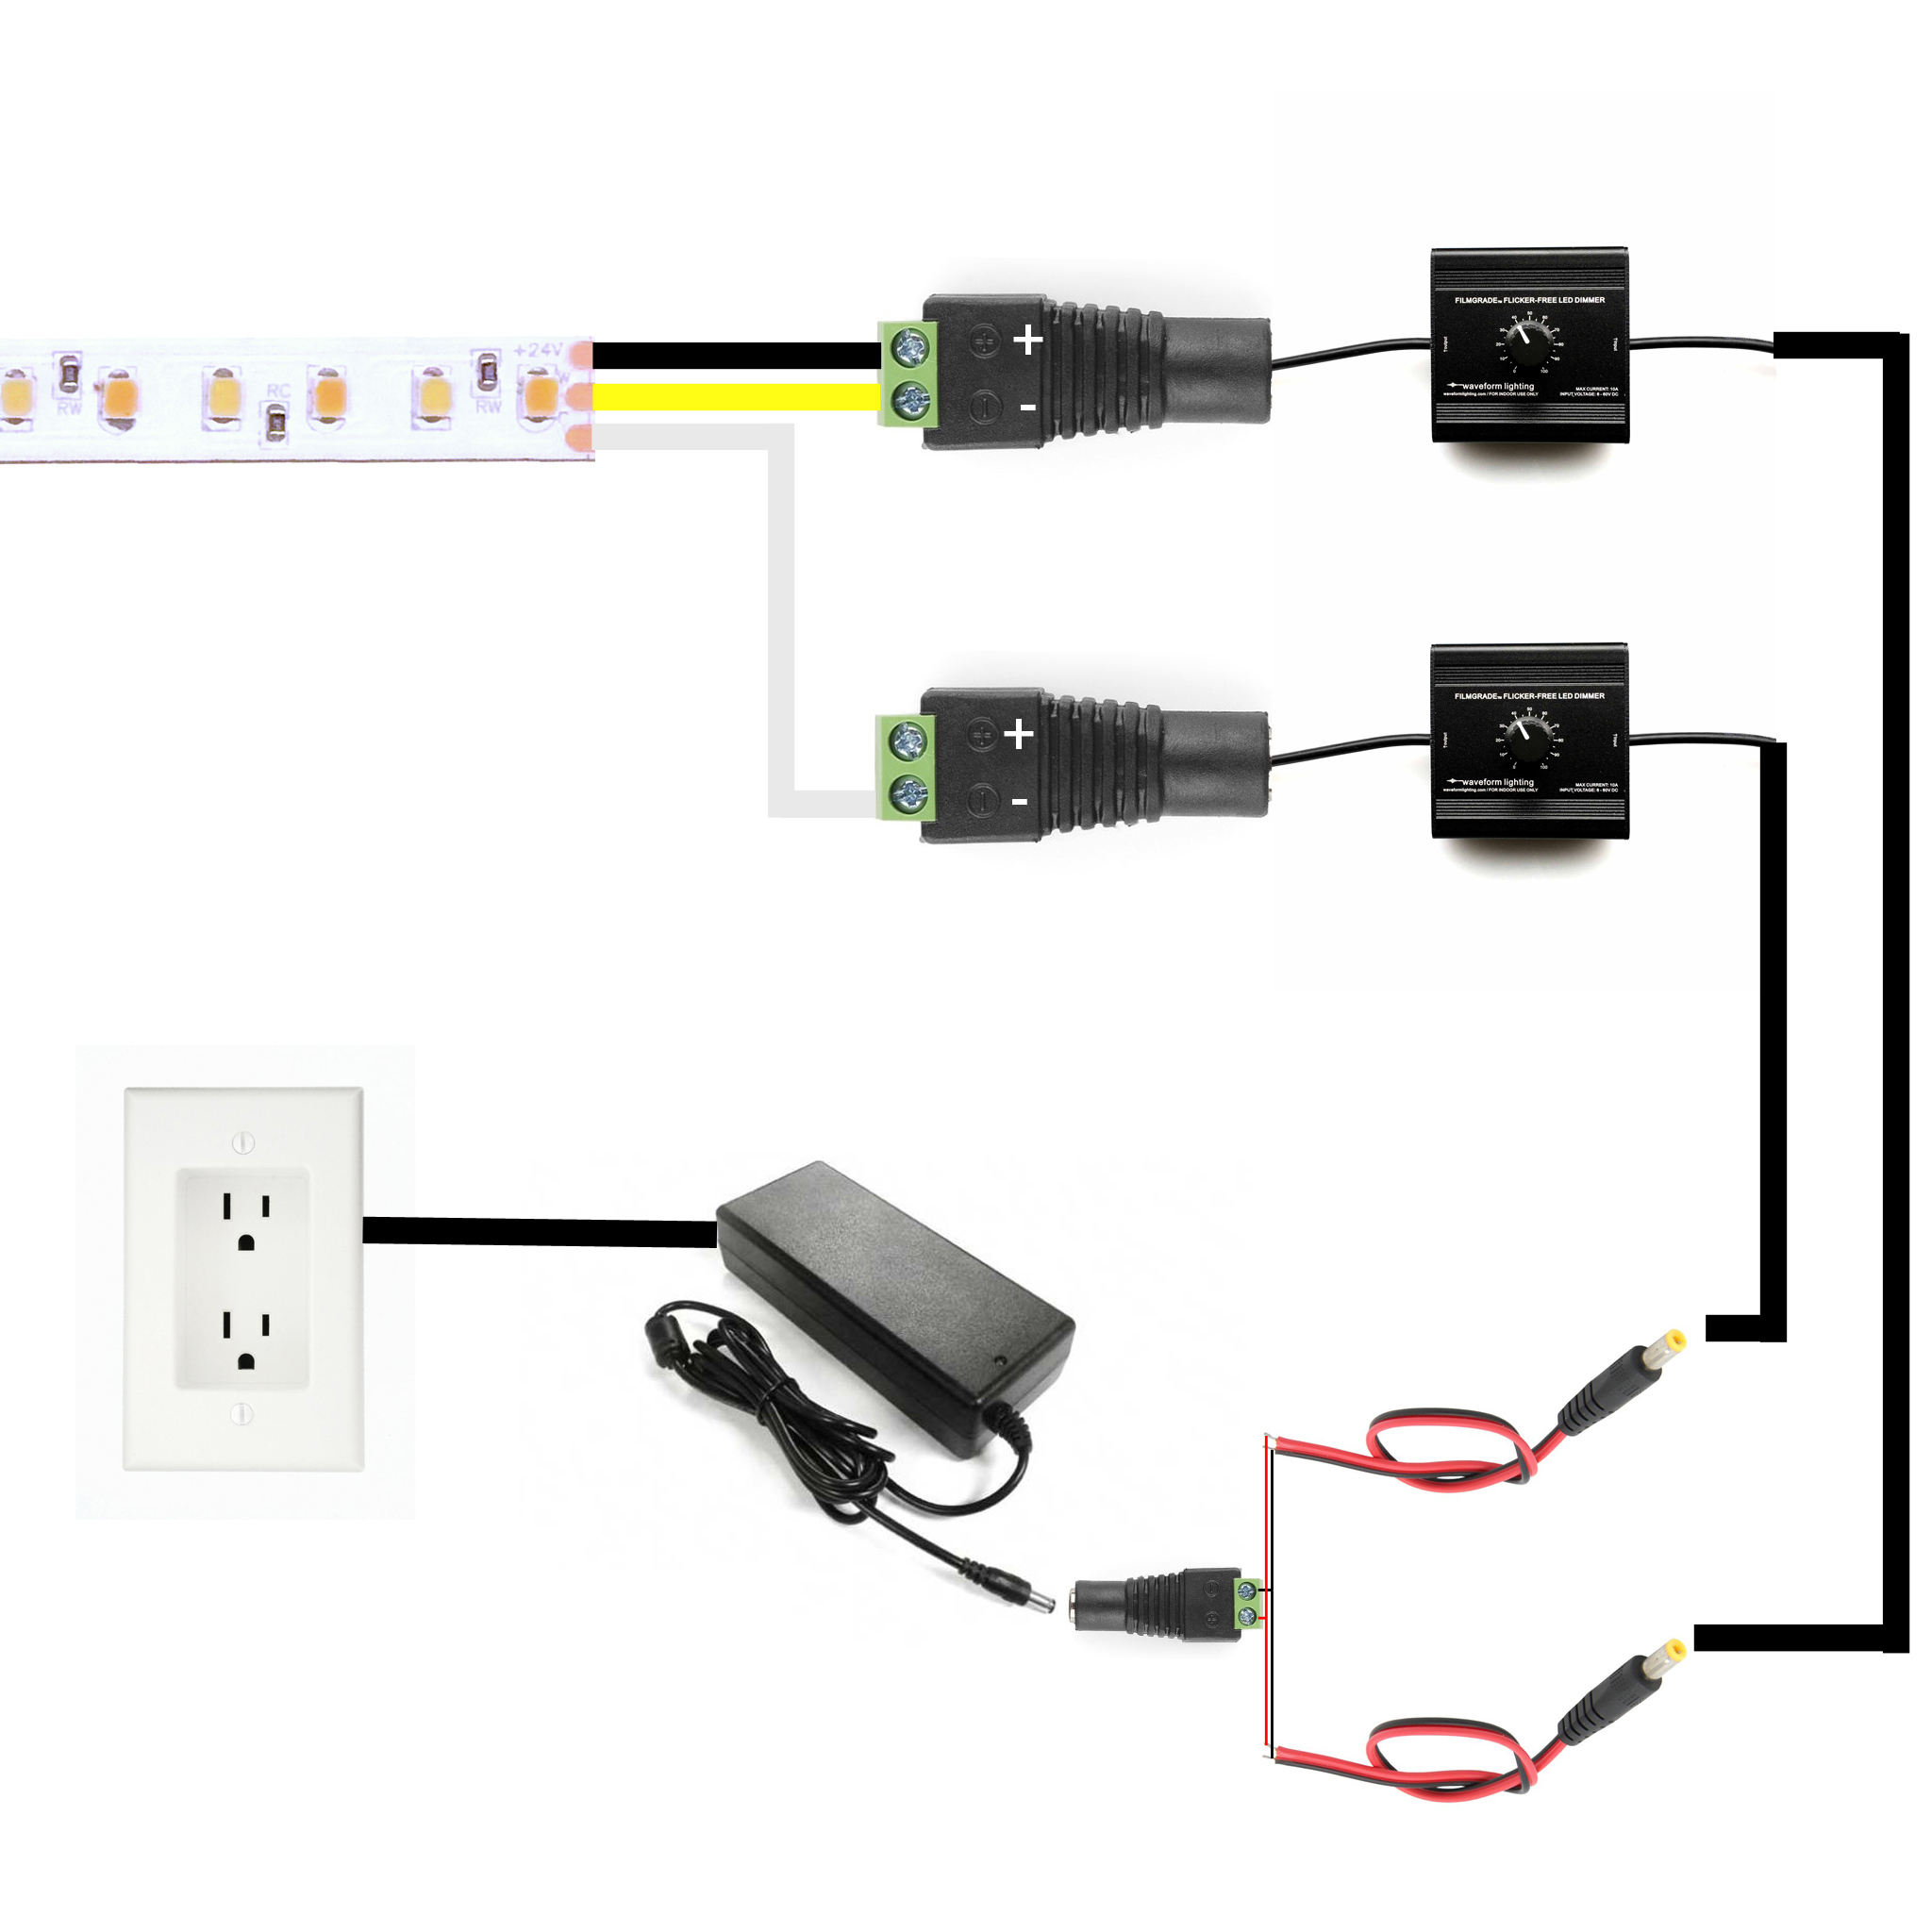 How To Connect Hybrid Cct Tunable Led Products Waveform Lighting You Can See Circuit Examples For And Dc Lamp Dimming Controller This Work The Two Dimmers Must Be Connected Same Power Supply Reason Is That If Pull From Different